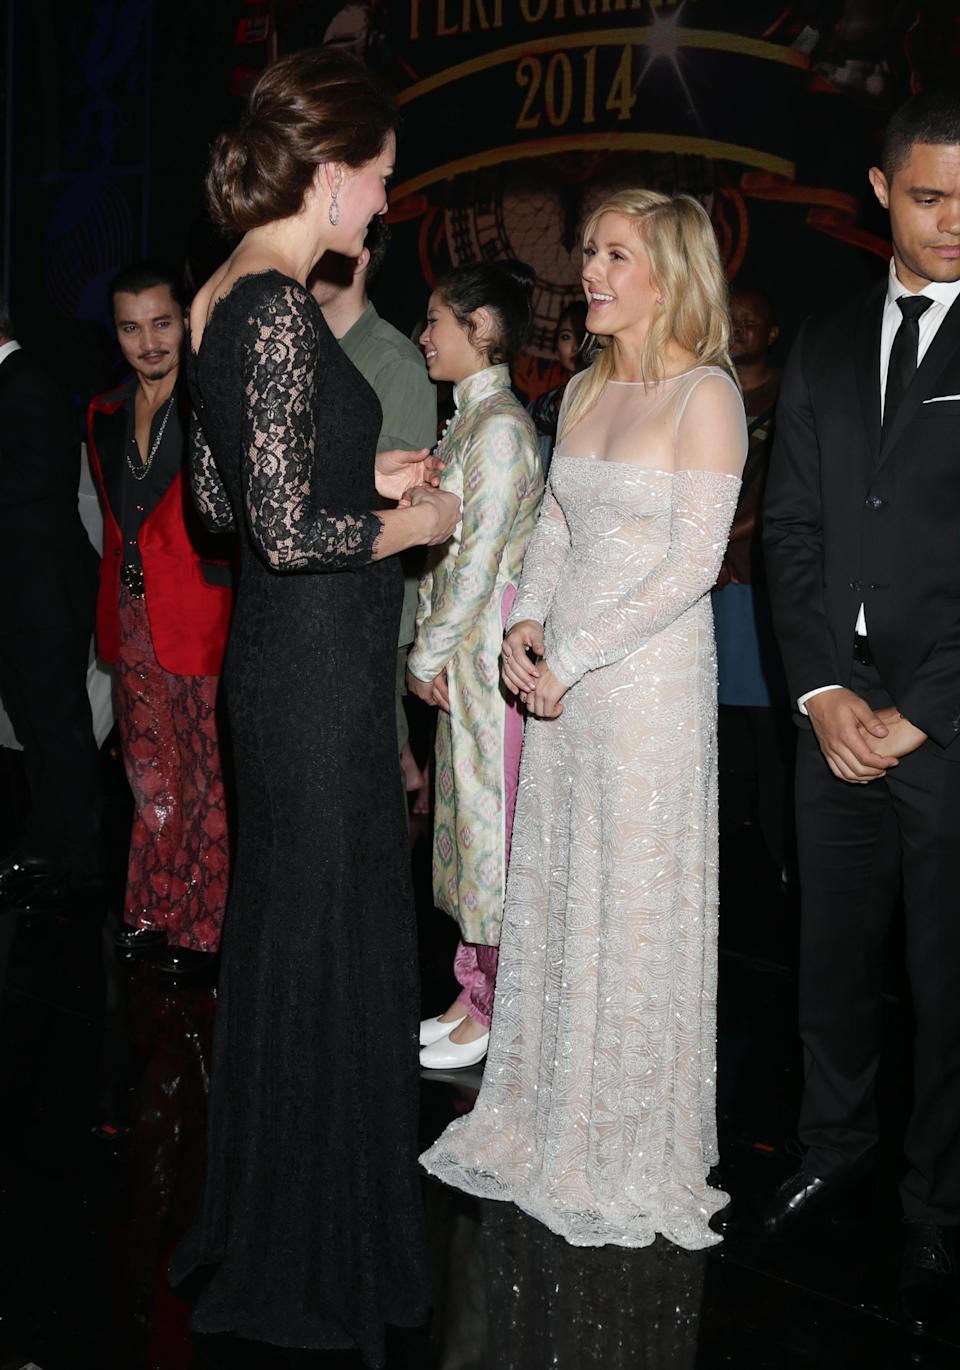 <p>Singer Ellie Goulding was also at the star-studded event and chose a floor-sweeping gown to meet the Duchess of Cambridge – who is sure to have approved. <em>[Photo: PA]</em> </p>